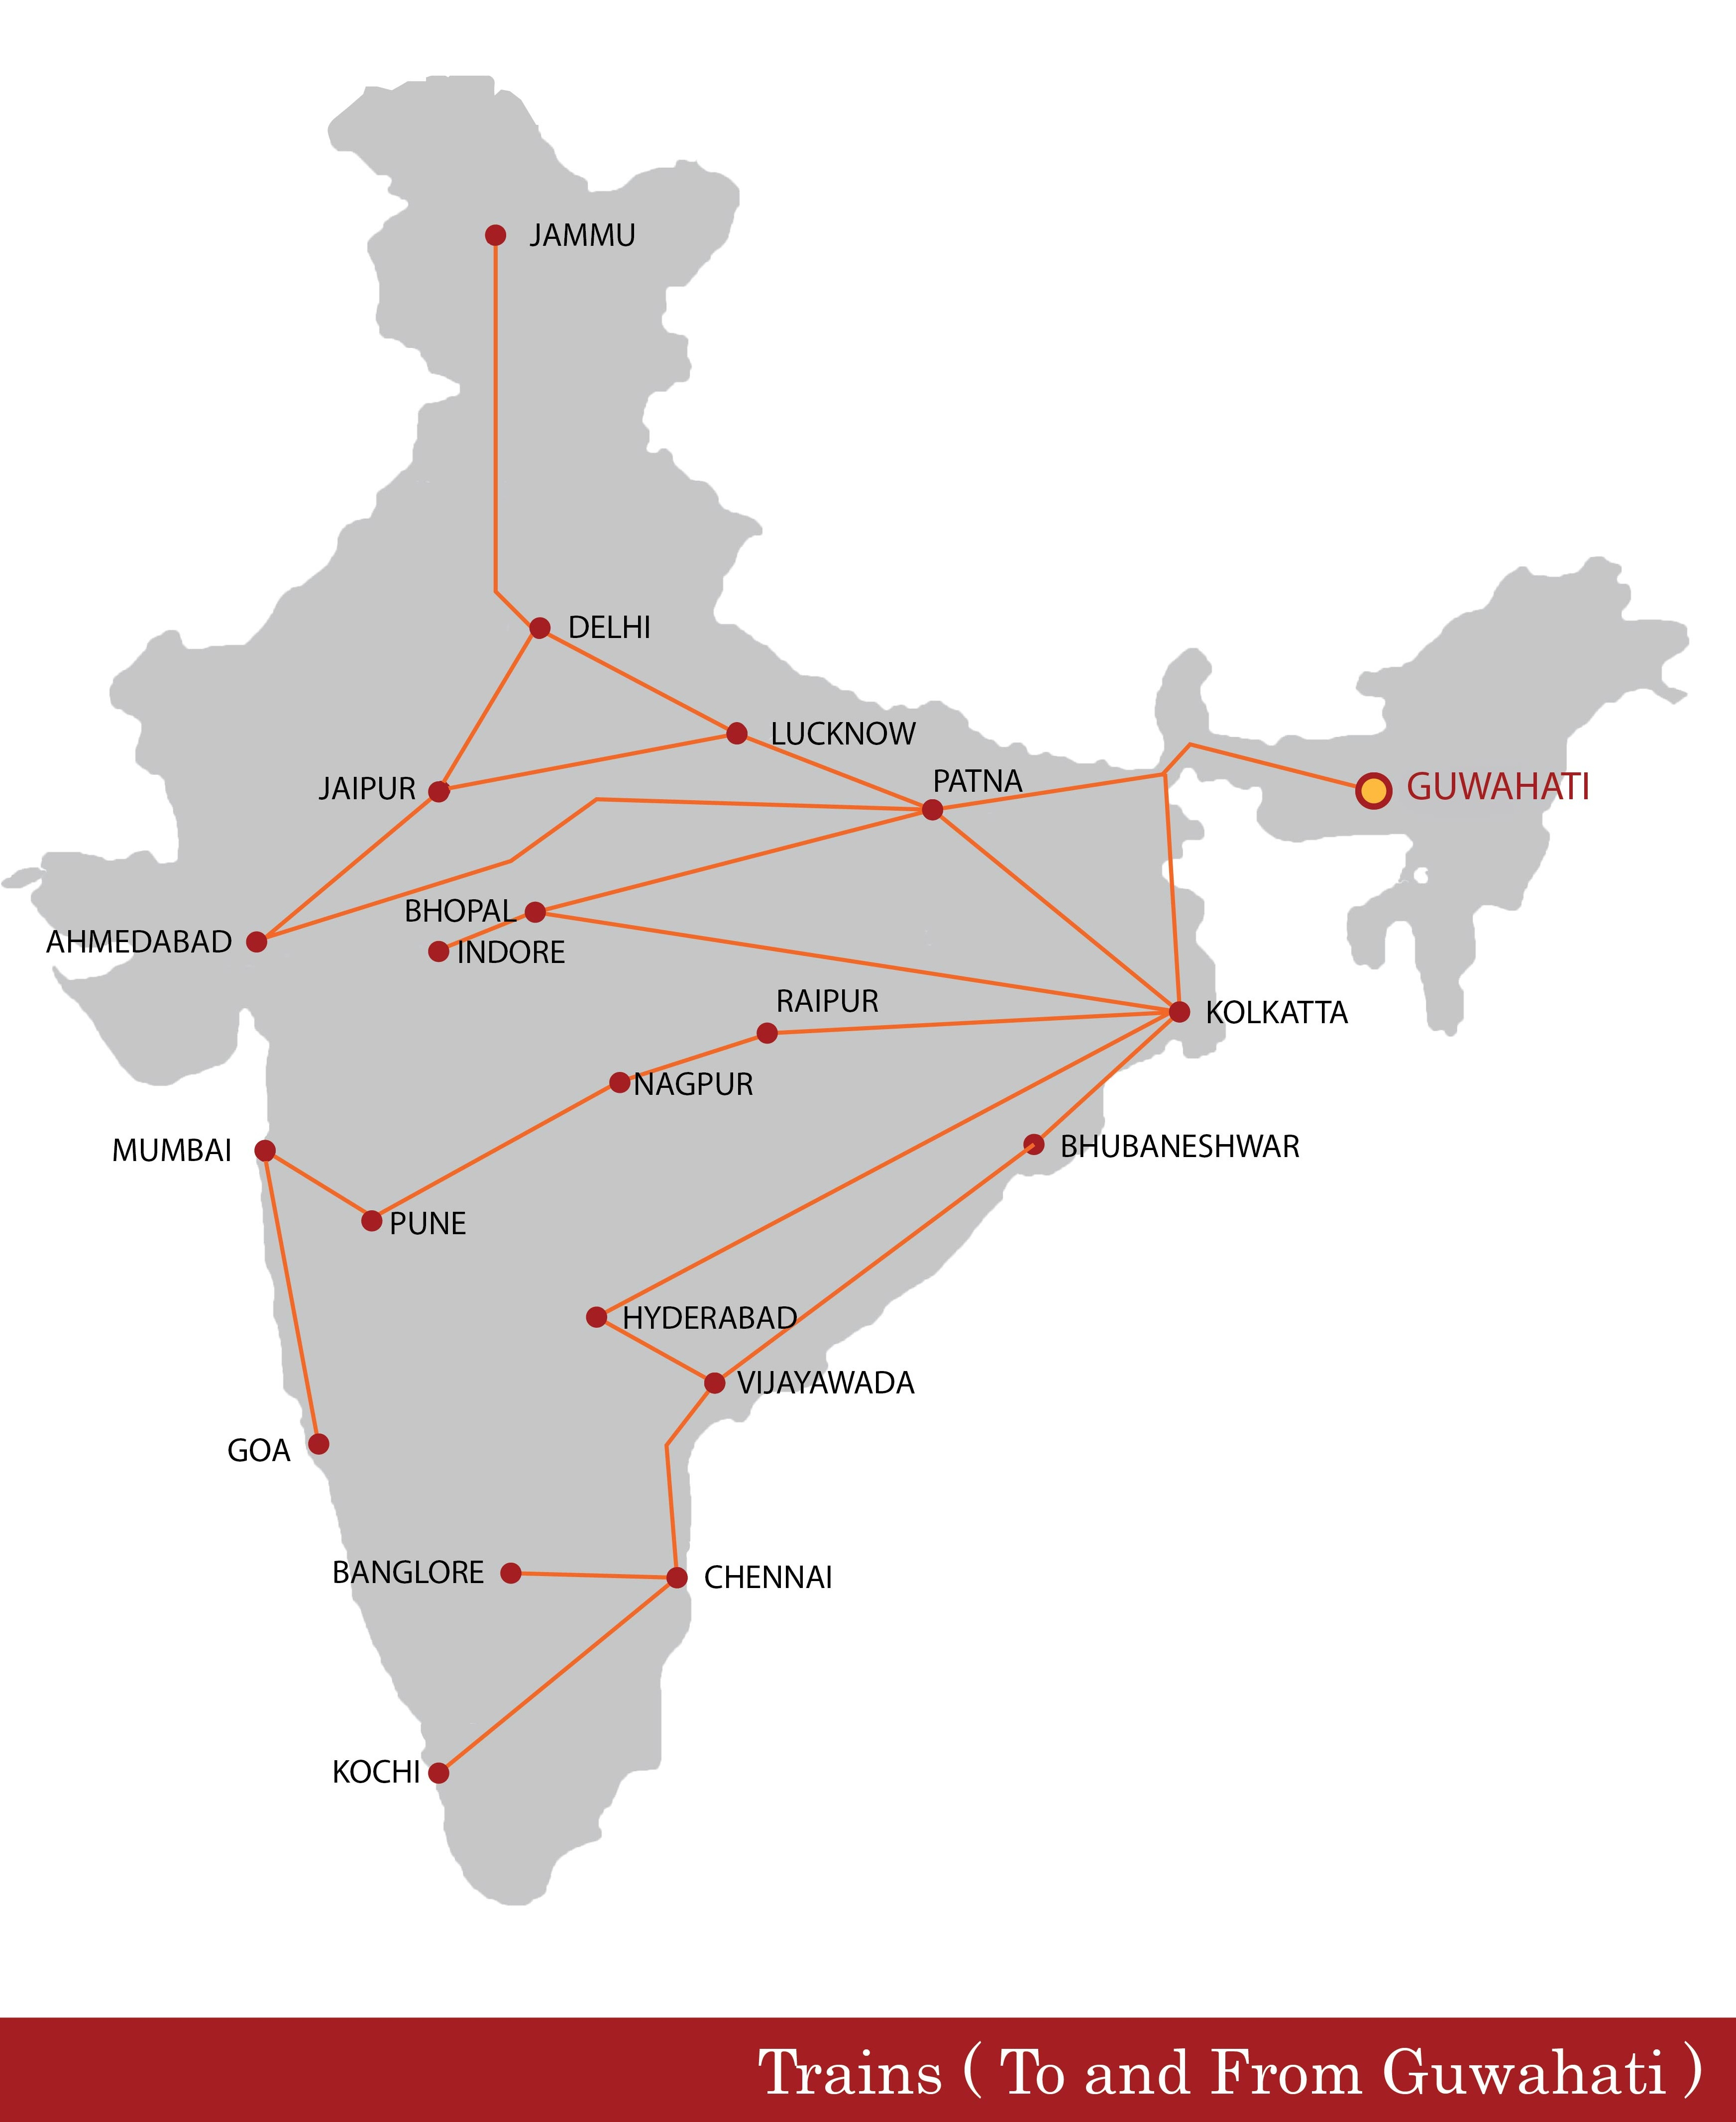 Guwahati In India Map Guwahati In India Map | Map Of Us Western States